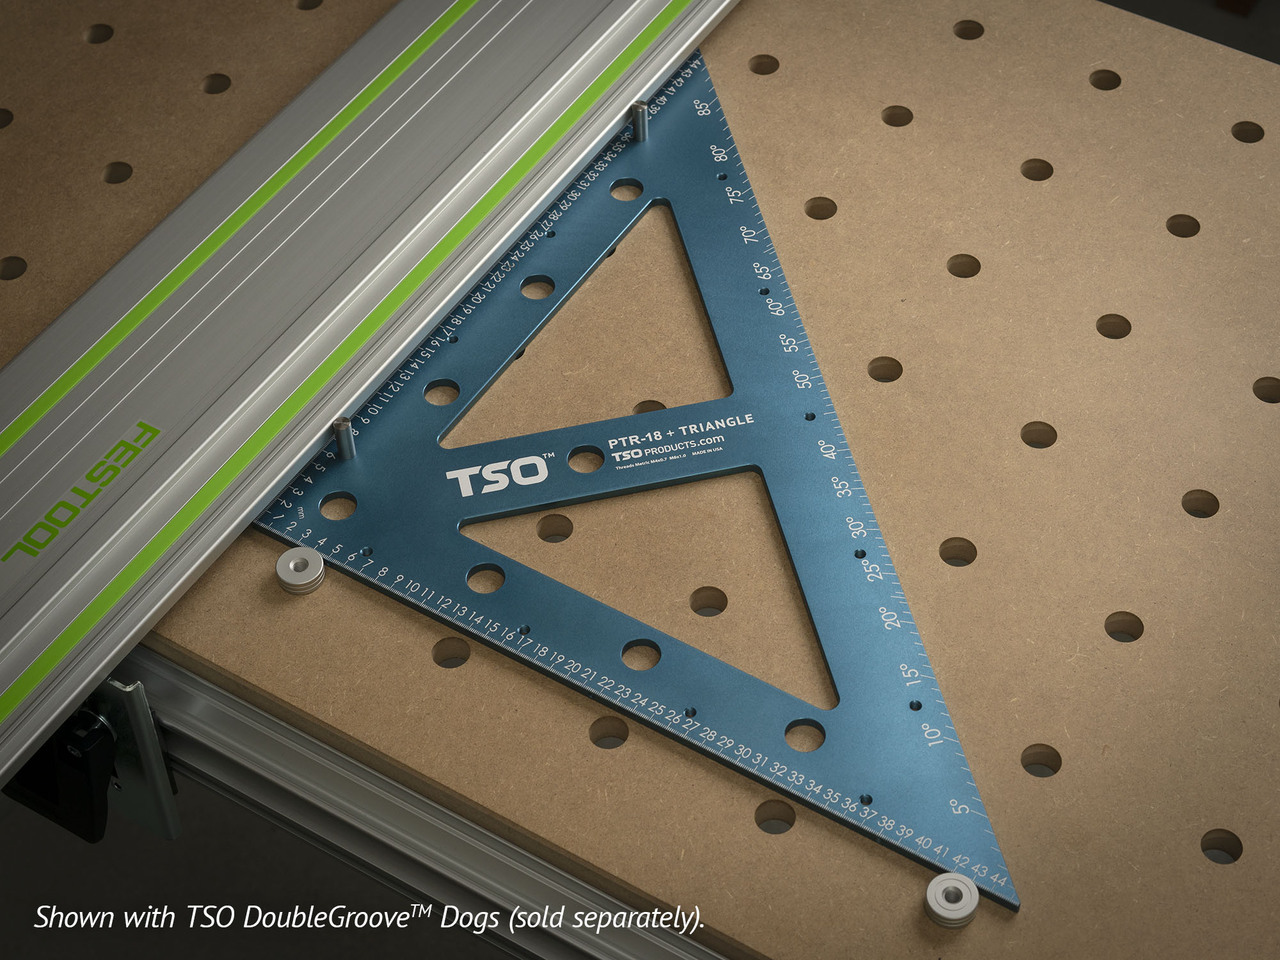 Using the long squaring pins that attach to the face of the PTR-18 and using either bench dogs (as shown) or the MFT/3 fence, you can quickly square a guide rail for perfectly straight 90 degree cuts.